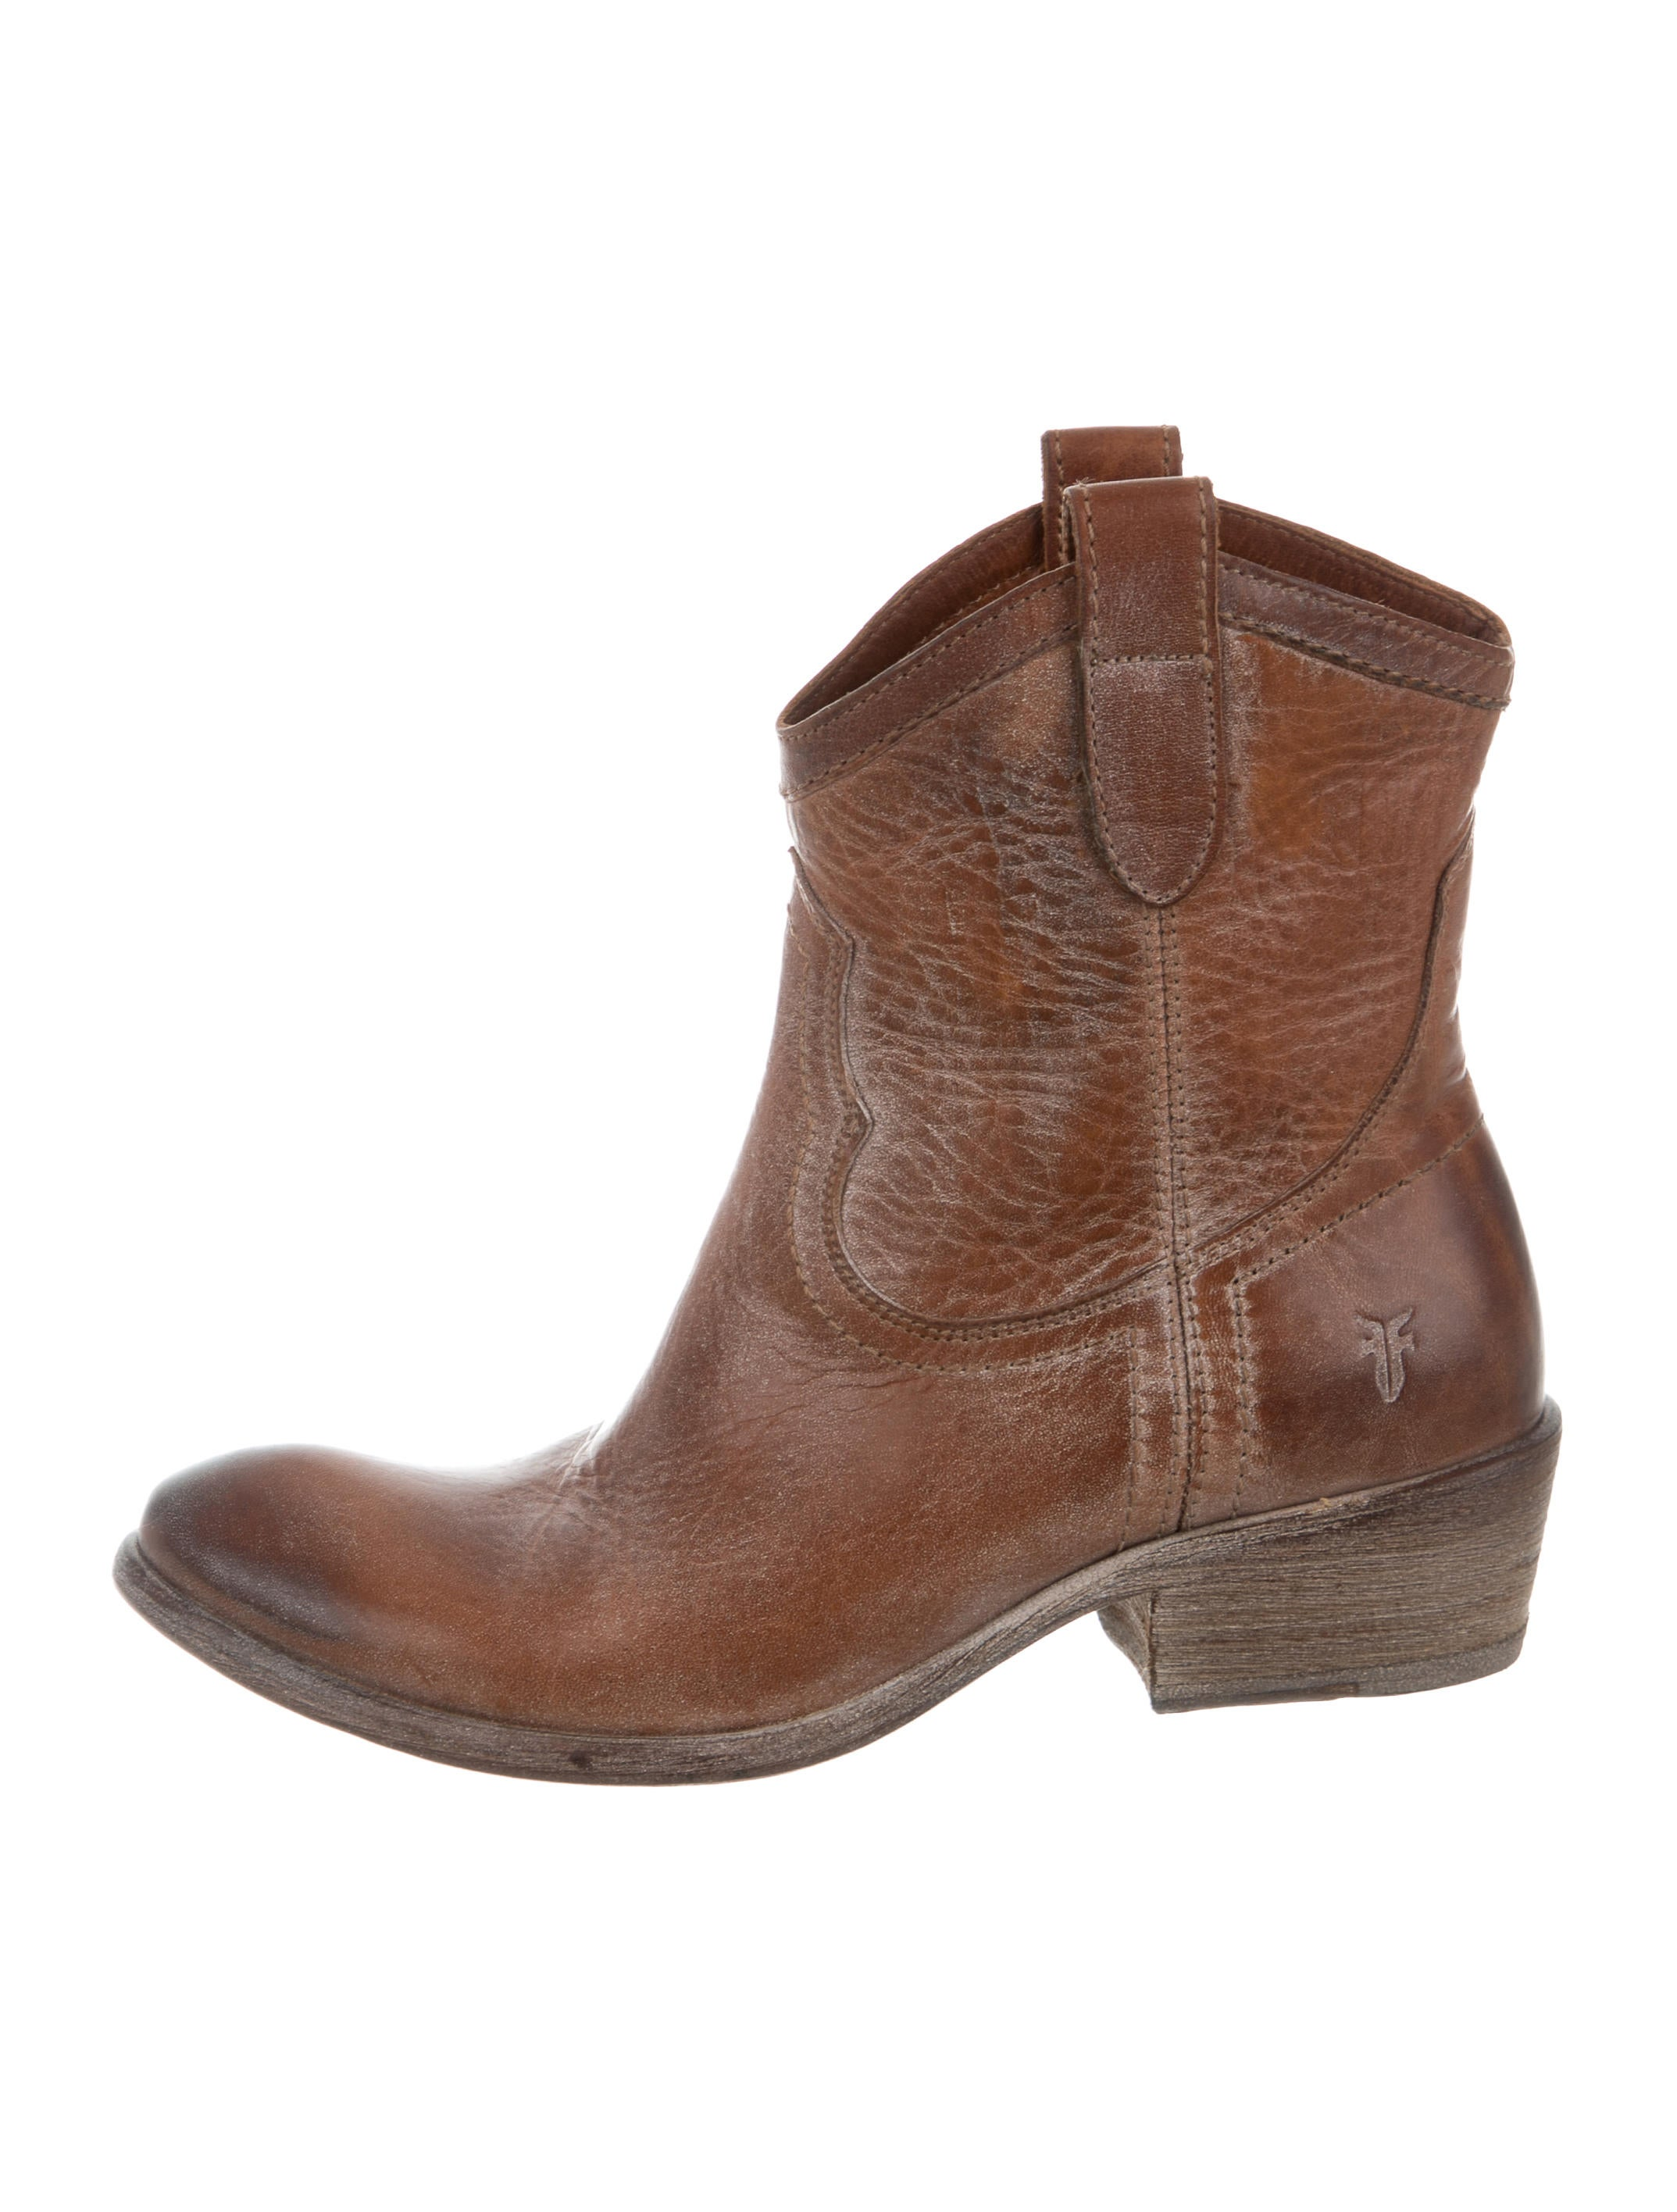 frye carson shortie leather ankle boots shoes wf821024